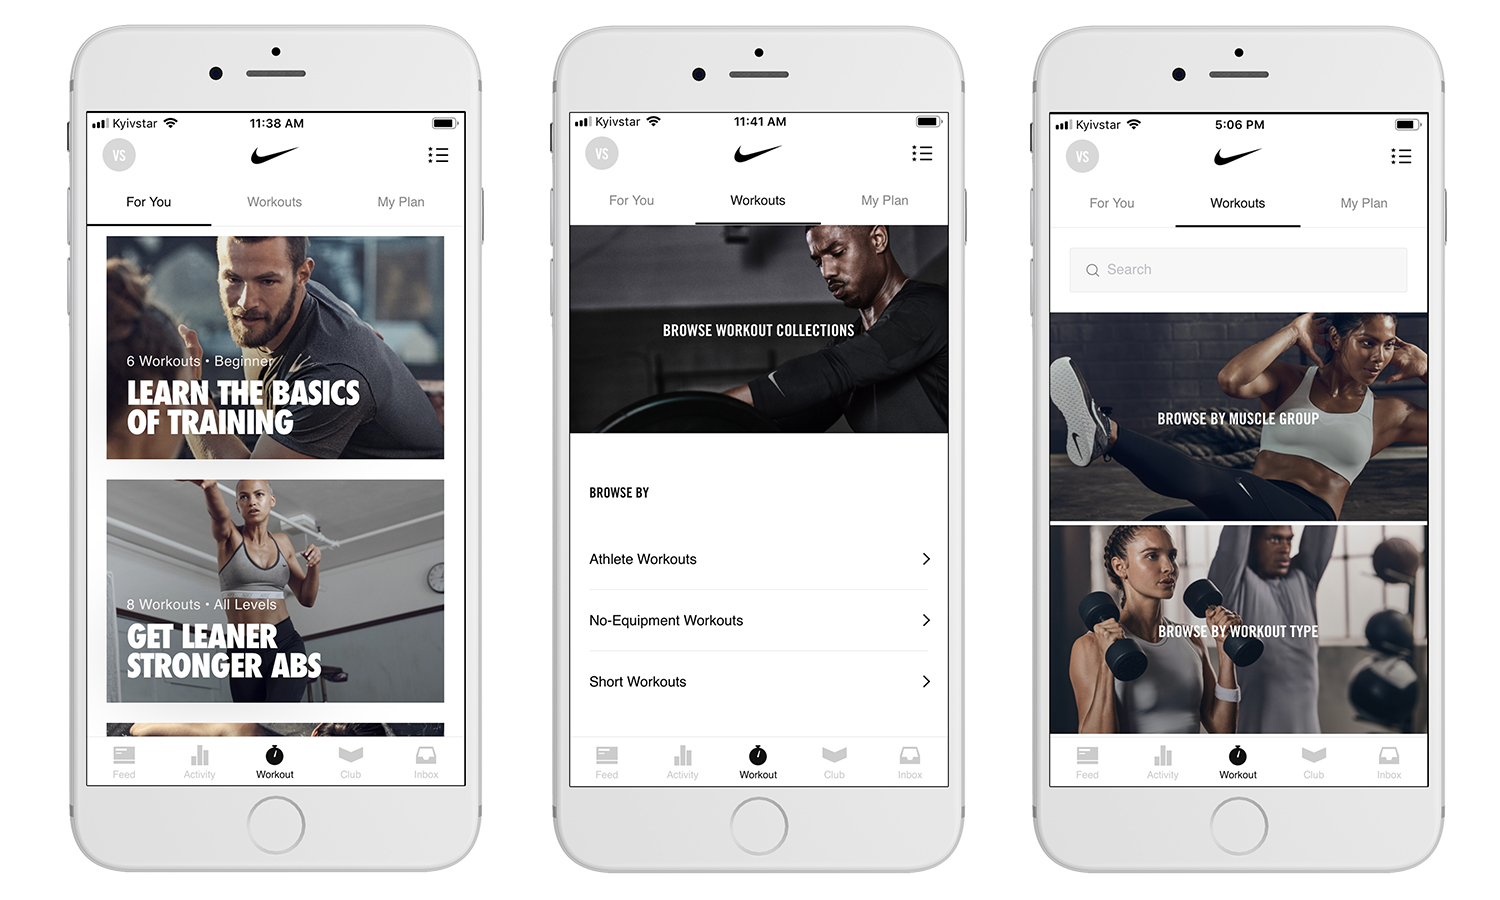 Development of an app like Nike Training Club